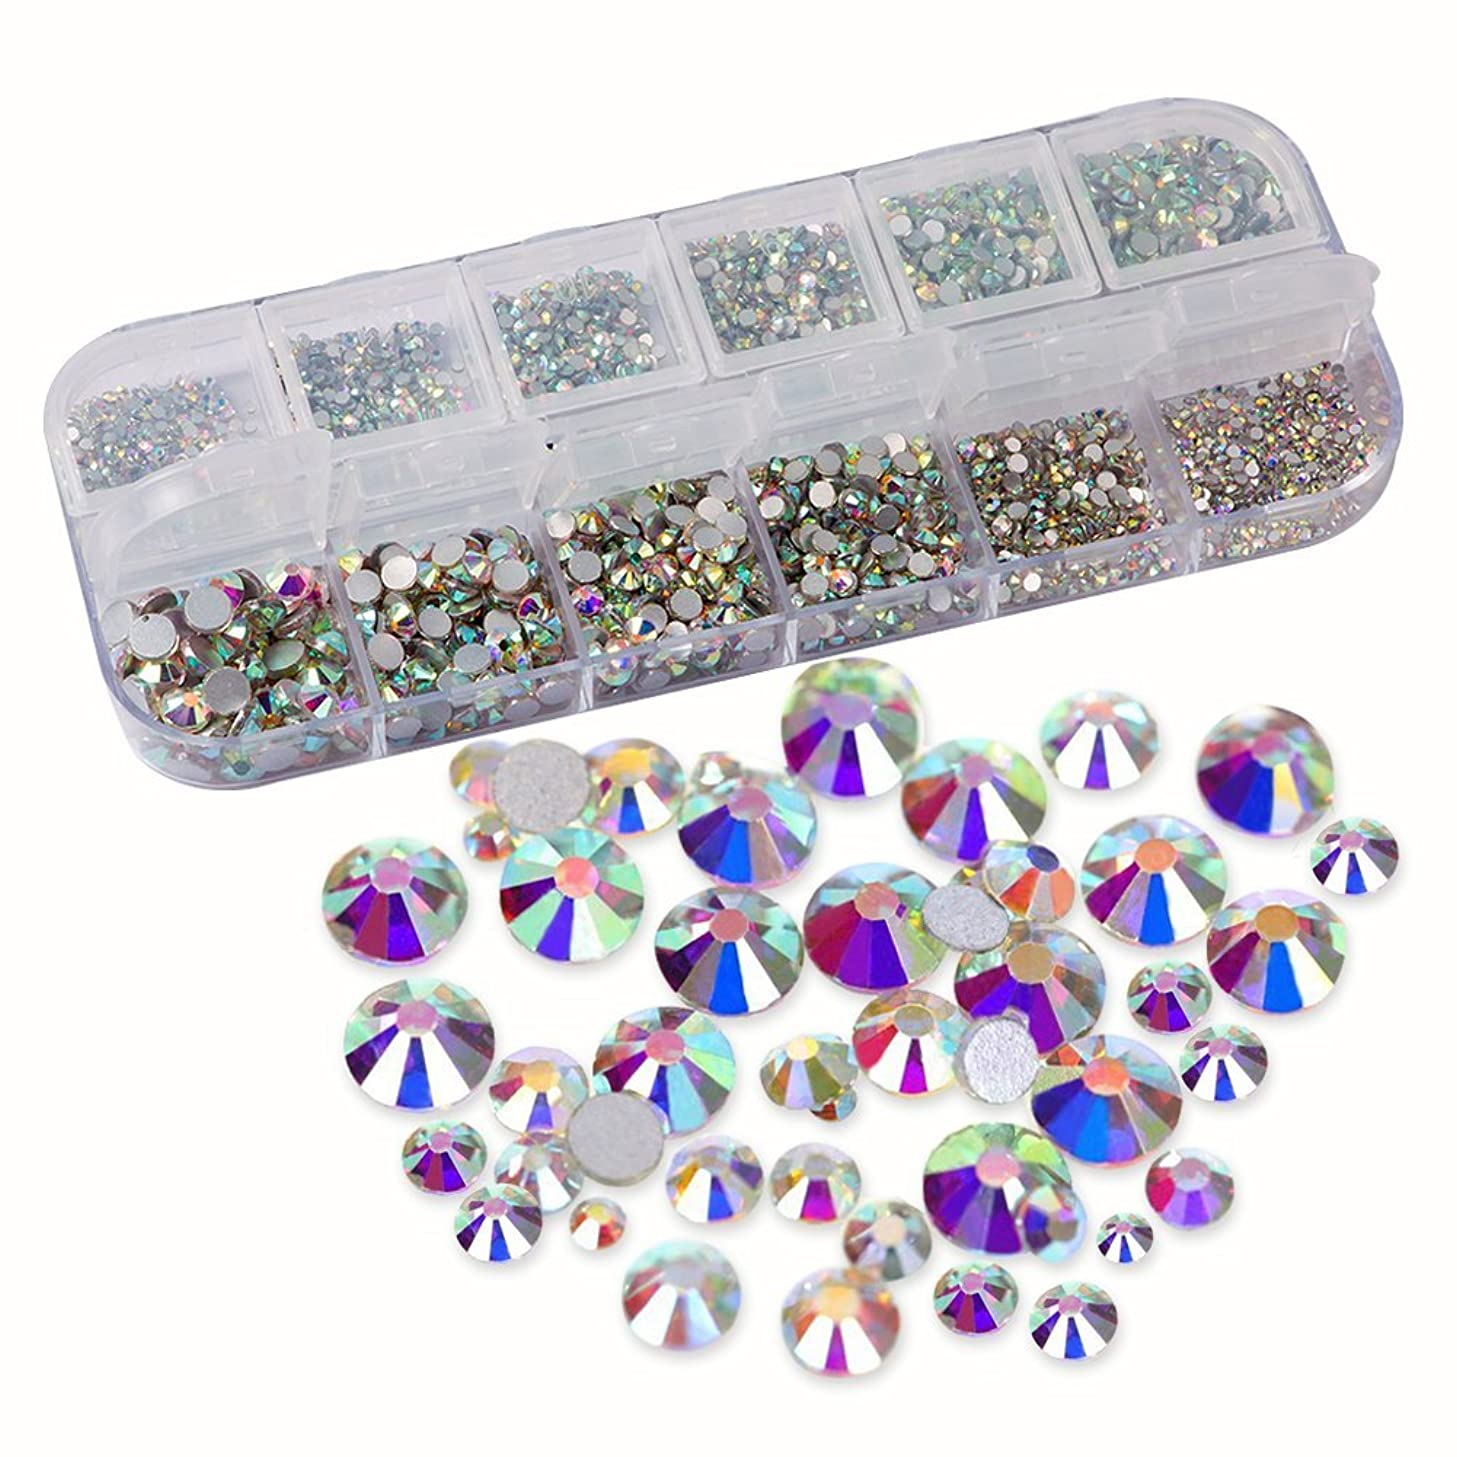 URlighting Crystal AB Rhinestones (3214 Pcs) Nail Art Rhinestones Round Beads Flatback Glass Charms Gems Stones, 9 Sizes for DIY Crafts, Phone, Nail Art, Clothes, Bag, Shoes, Wedding Decoration